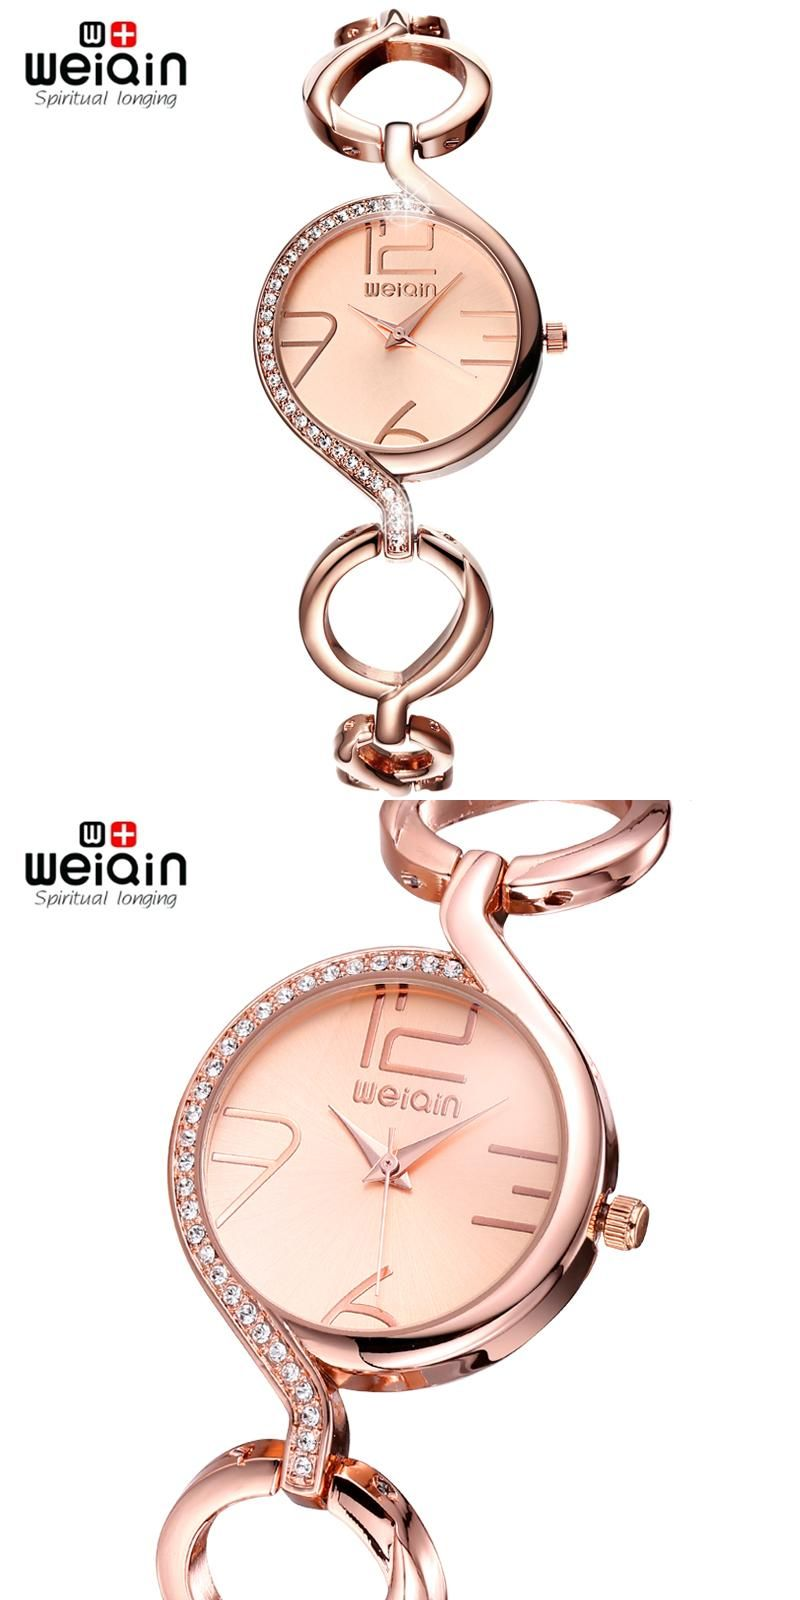 da064d52713 WEIQIN Brand Luxury Crystal Gold Watches Women Fashion Bracelet Watch  Quartz Shock Waterproof Relogio Feminino orologio